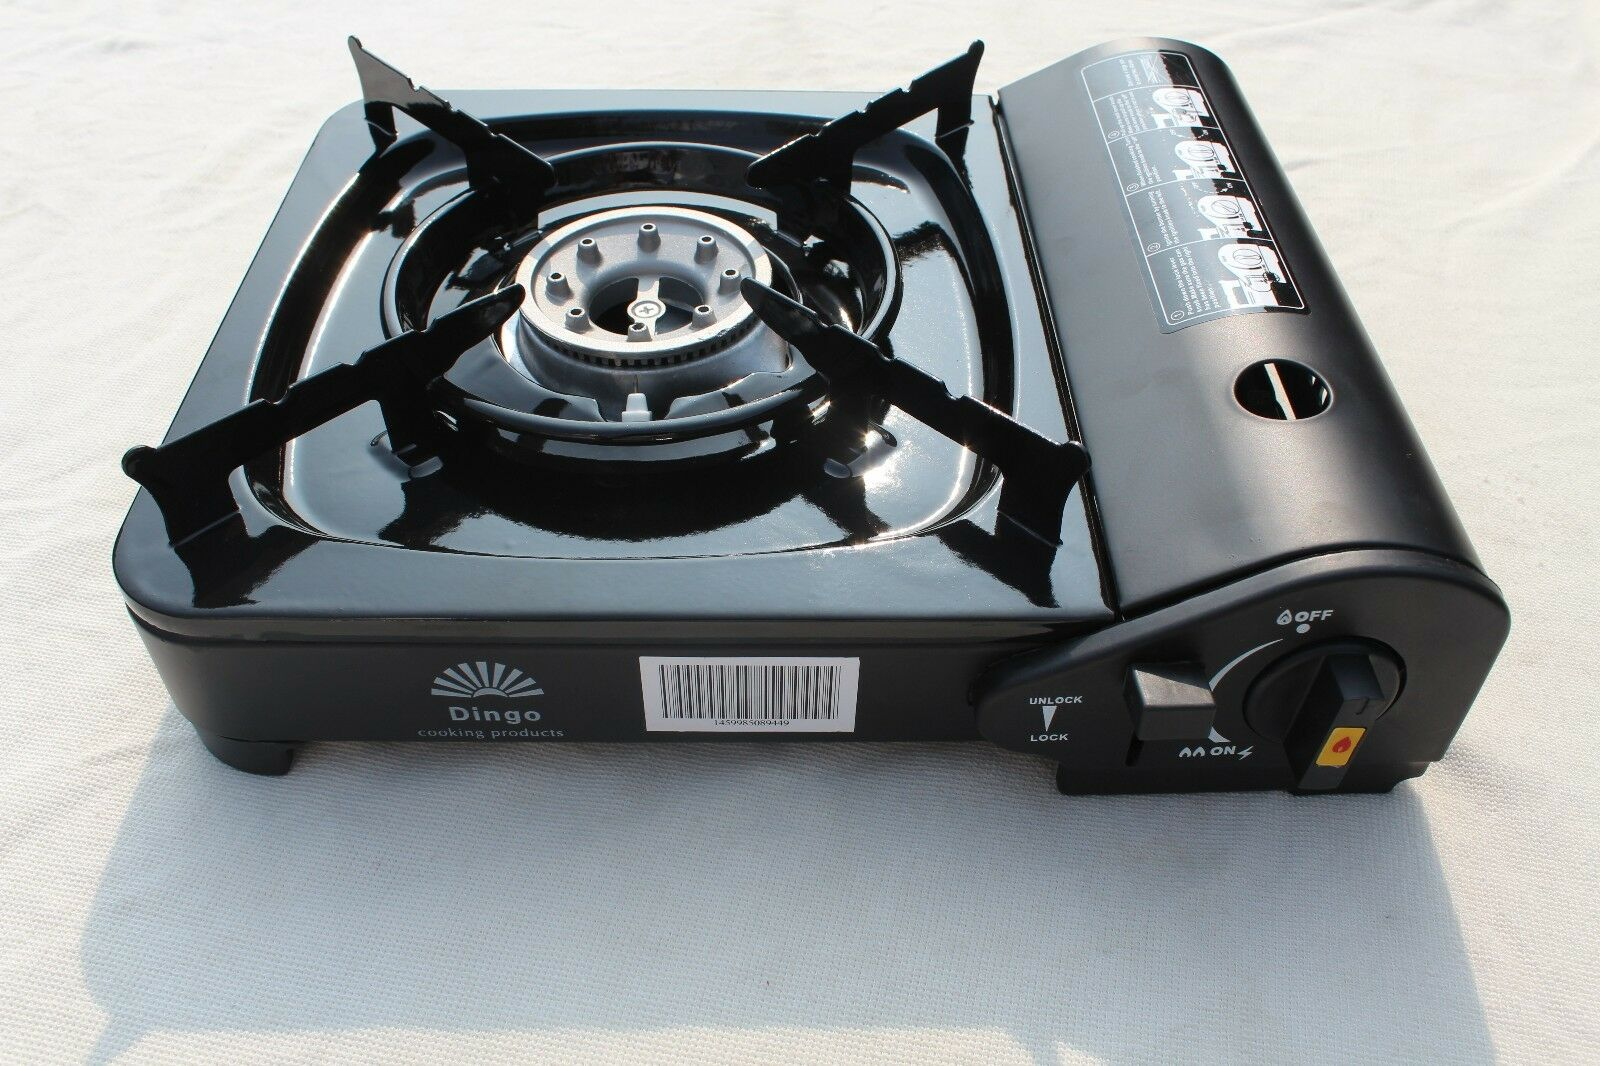 400 8,000 btu portable camping burners sold at one time